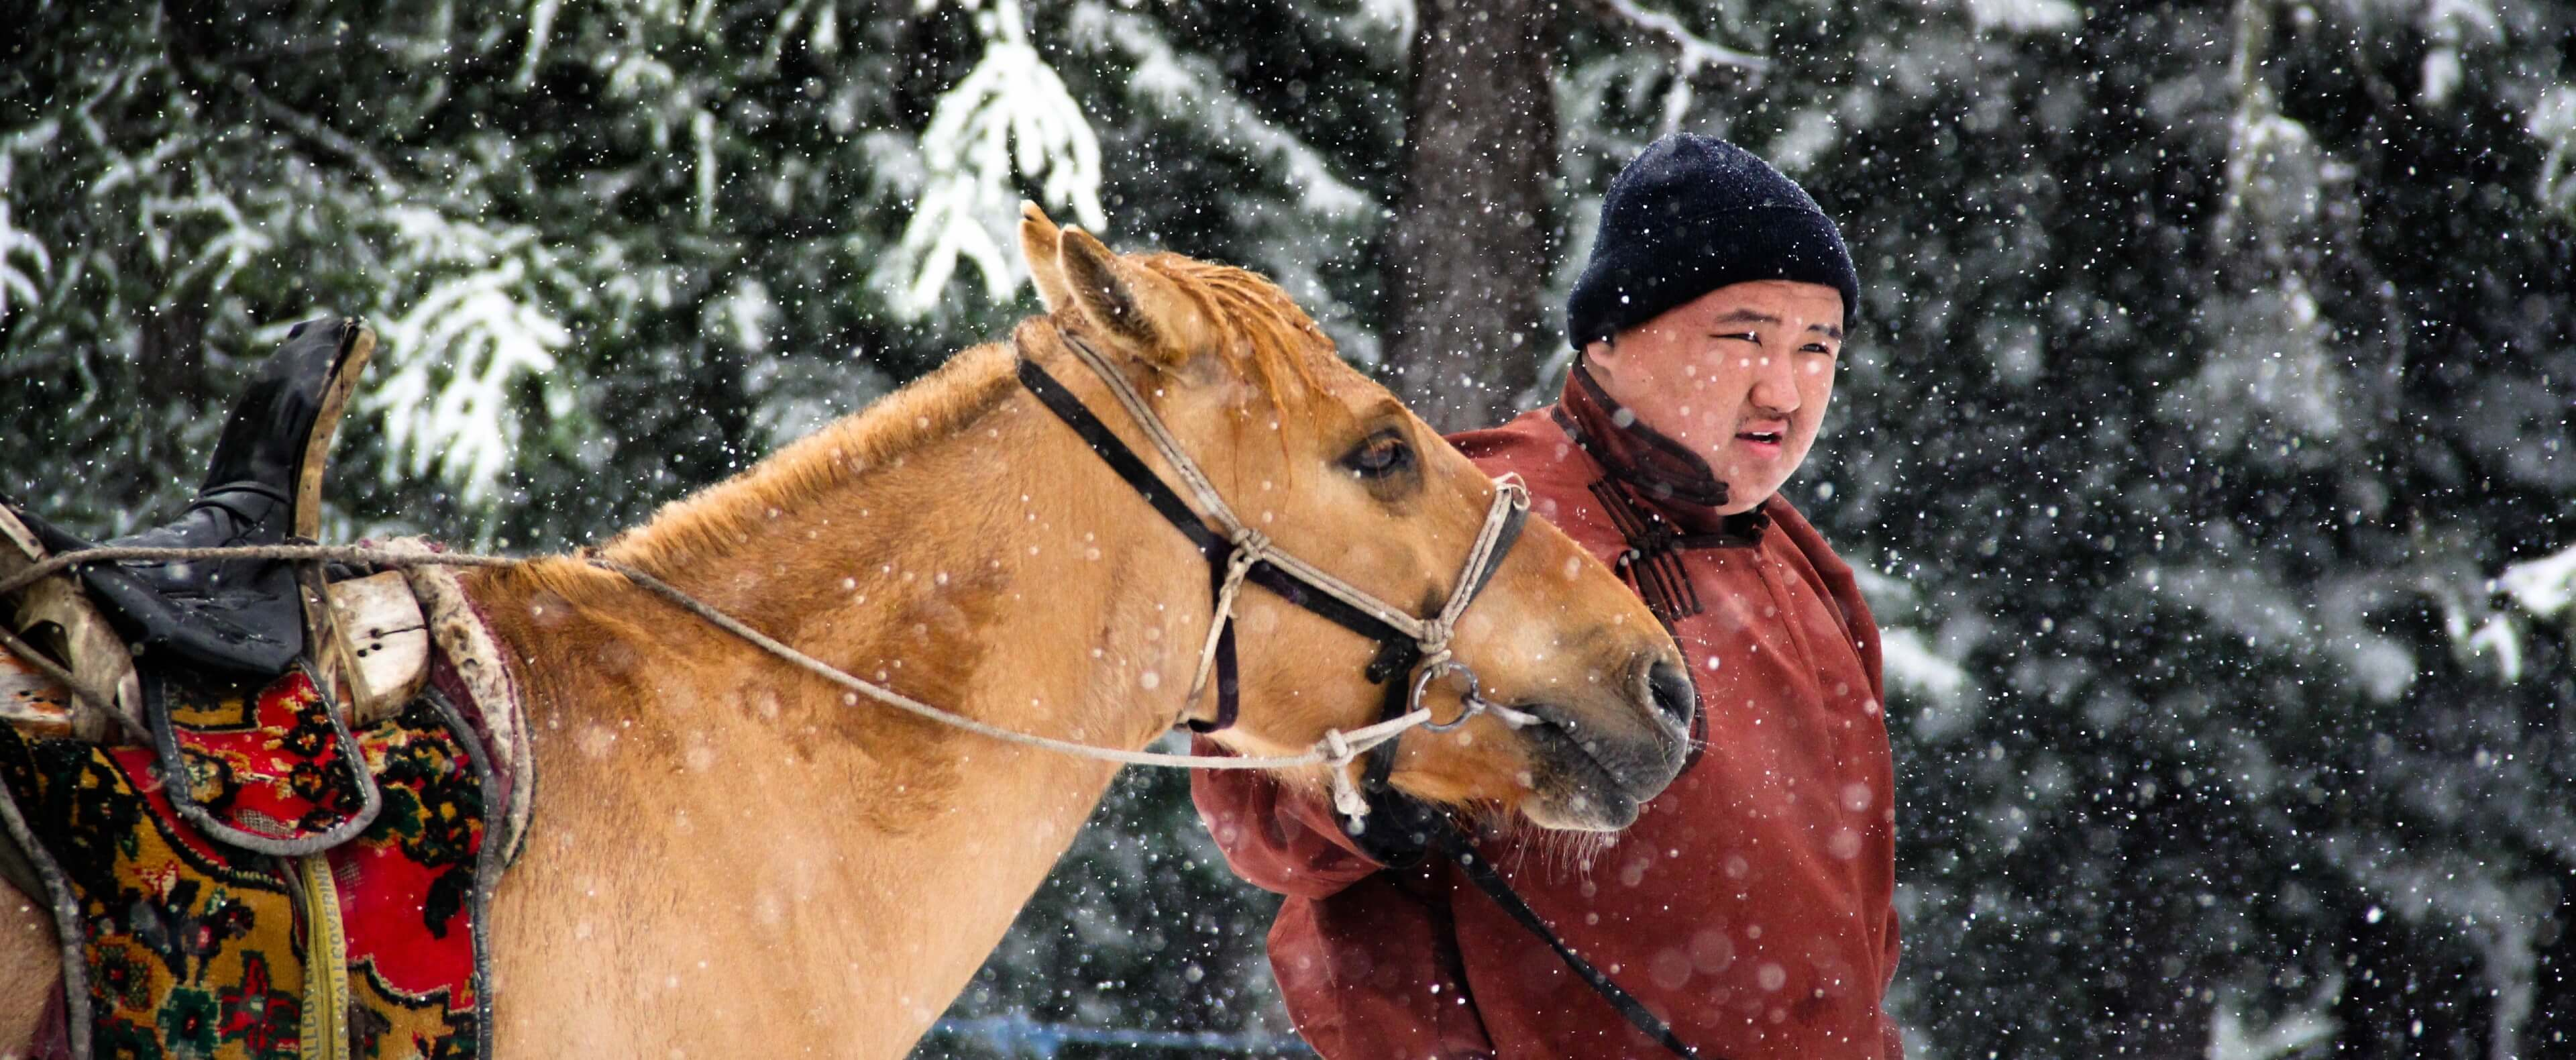 A Mongolian man with a horse